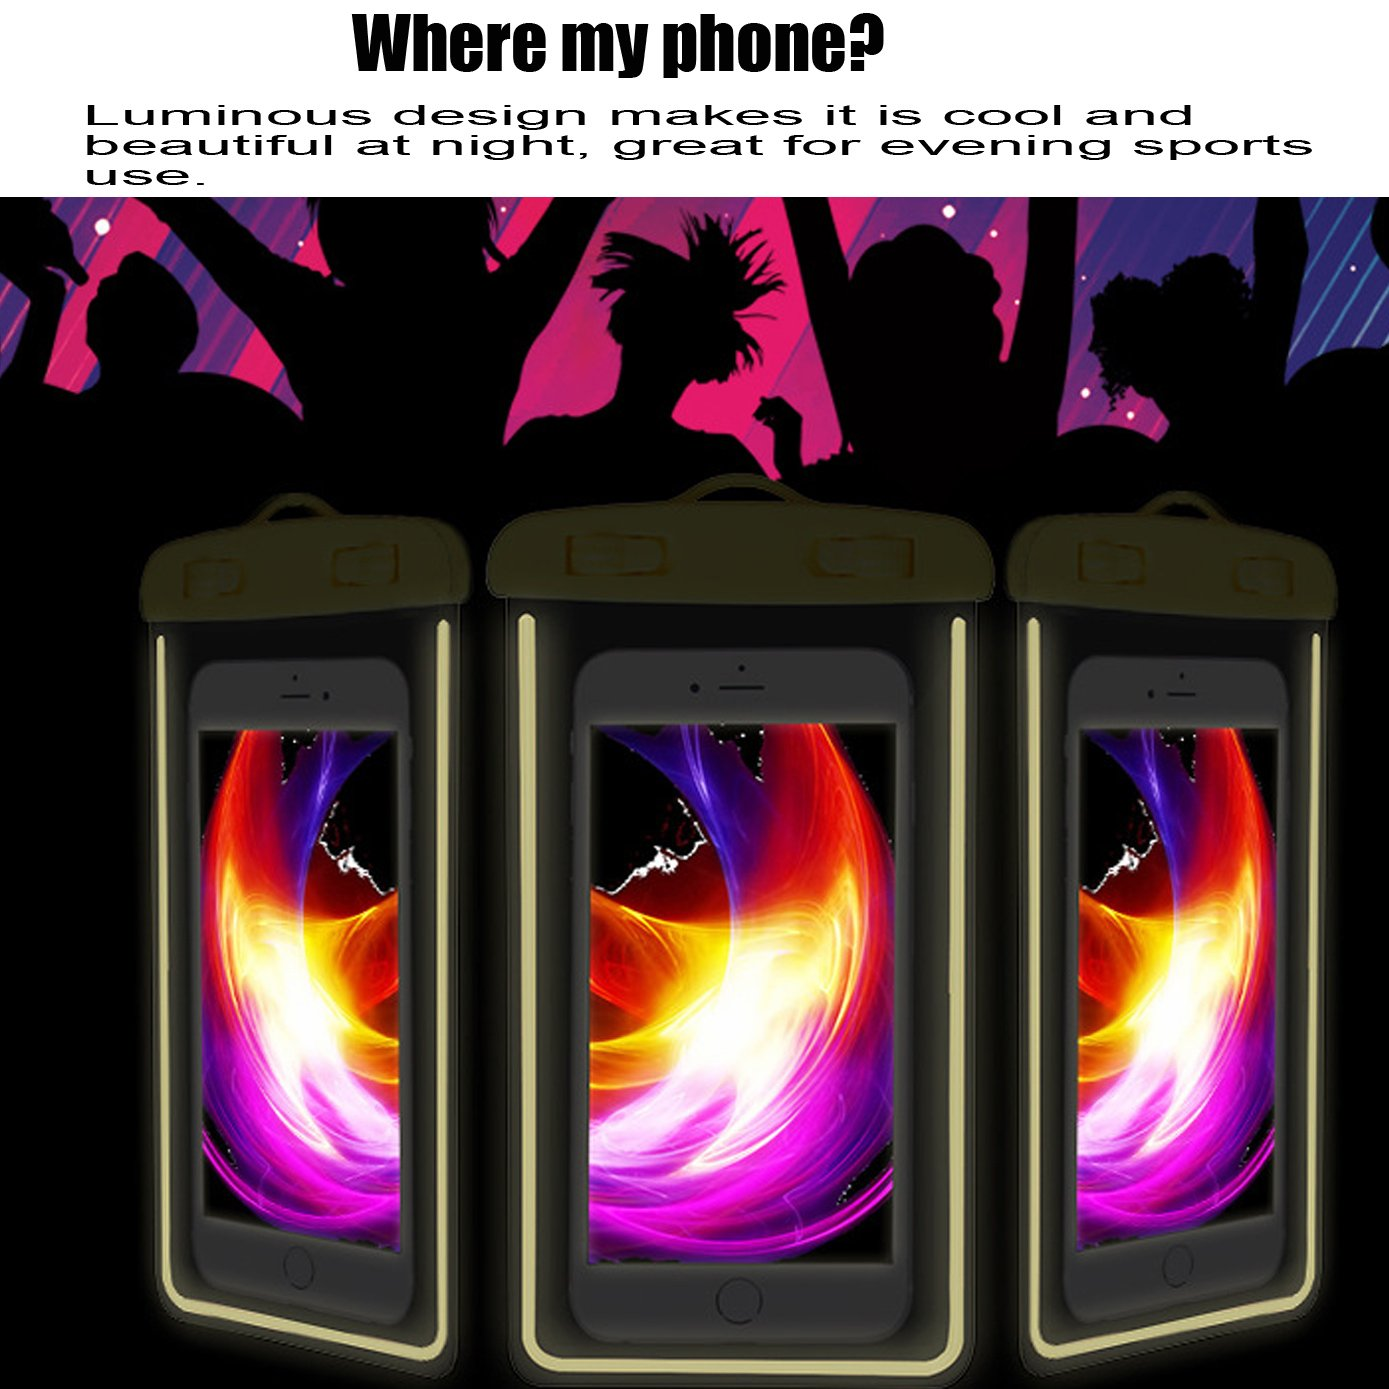 [2Pack Blue+2Pack pink] Universal Waterproof Phone Case Dry Bag CaseHQ for iPhone 7,7 plus,8,8 plus,6/6s/6plus/6splus Samsung Galaxy s5/s6,s7,s8 plus etc. Waterproof for Cell Phone up to 5.8 inches by CaseHQ (Image #6)